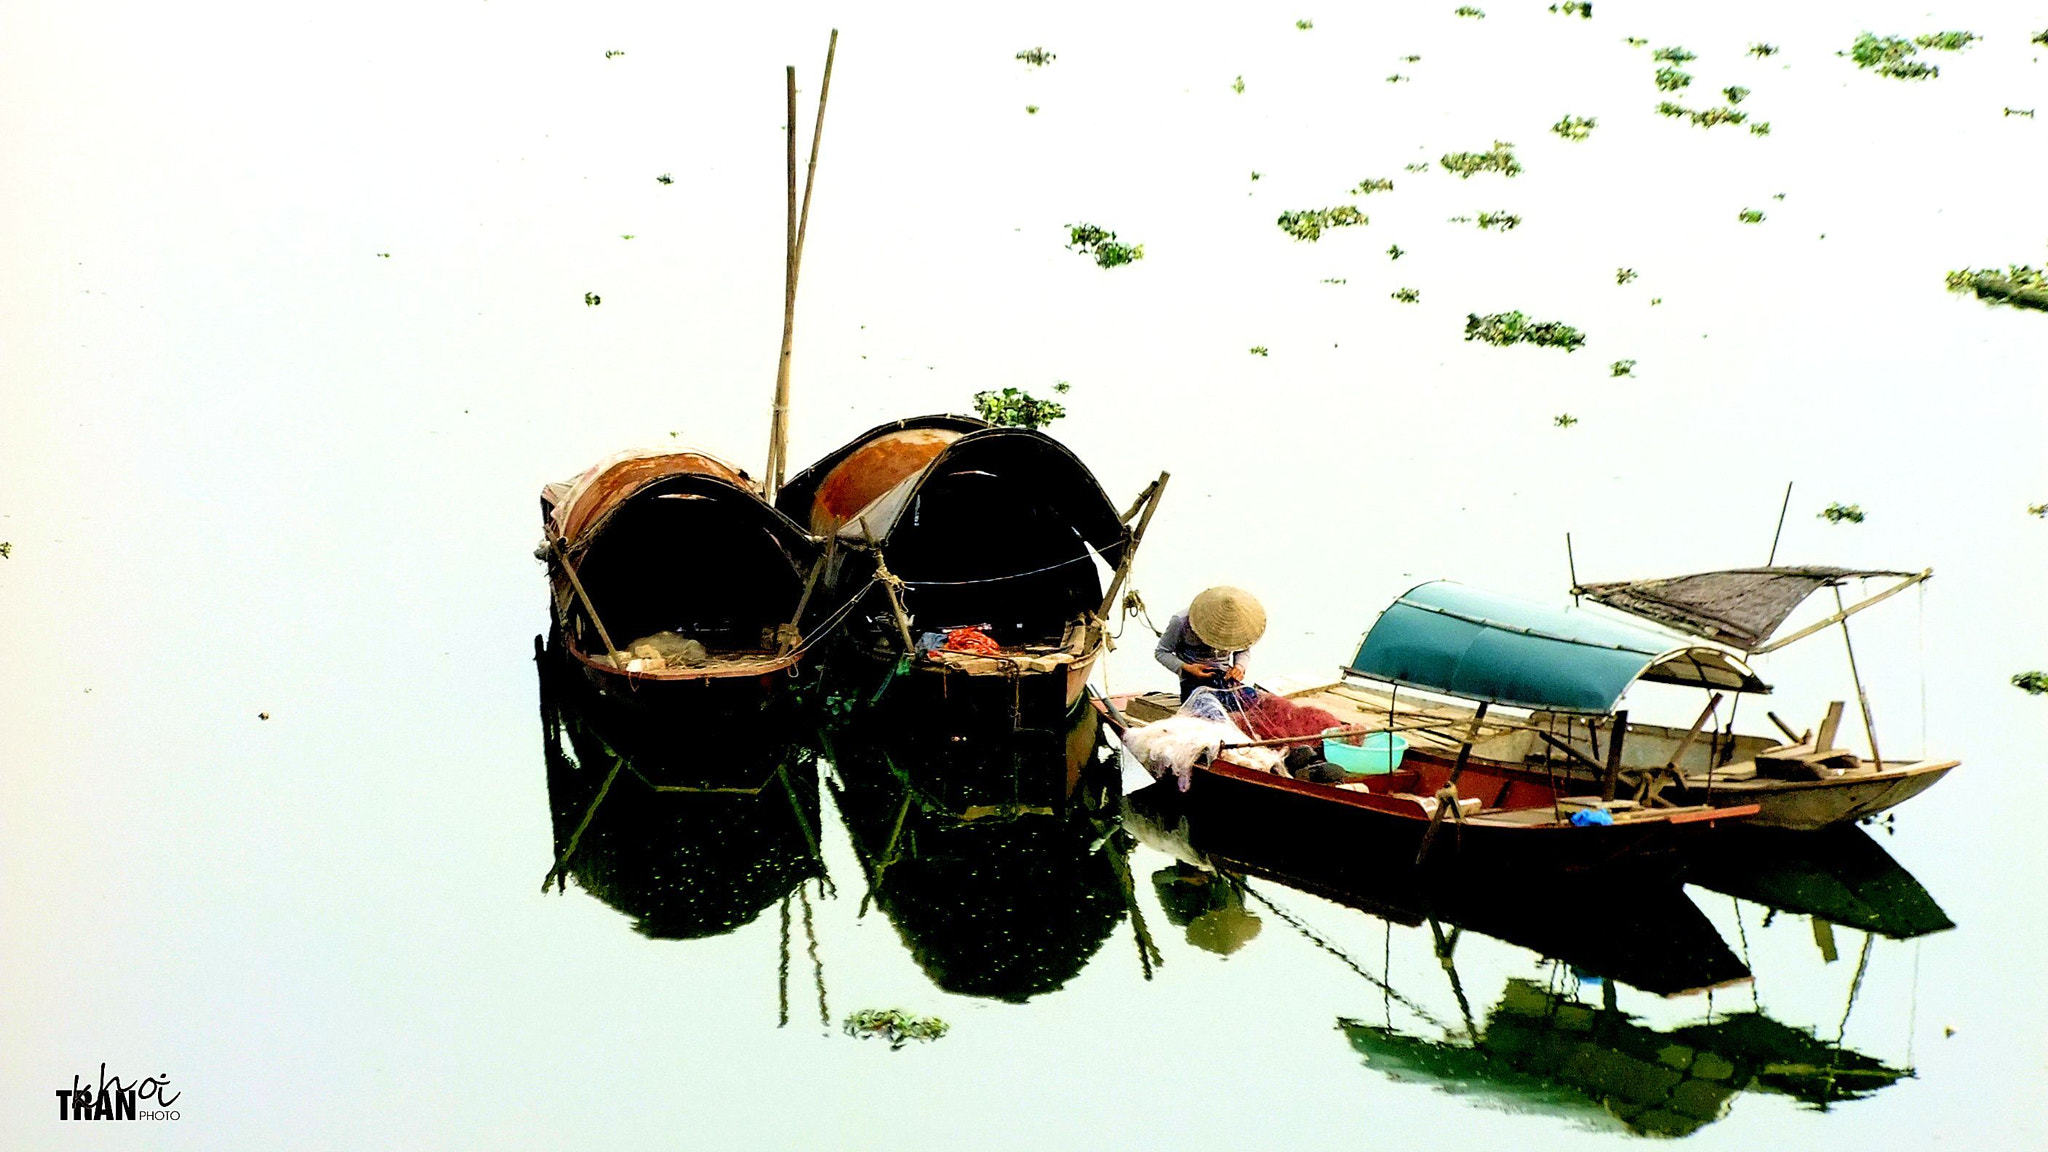 Photograph Hardship by Khoi Tran Duc on 500px